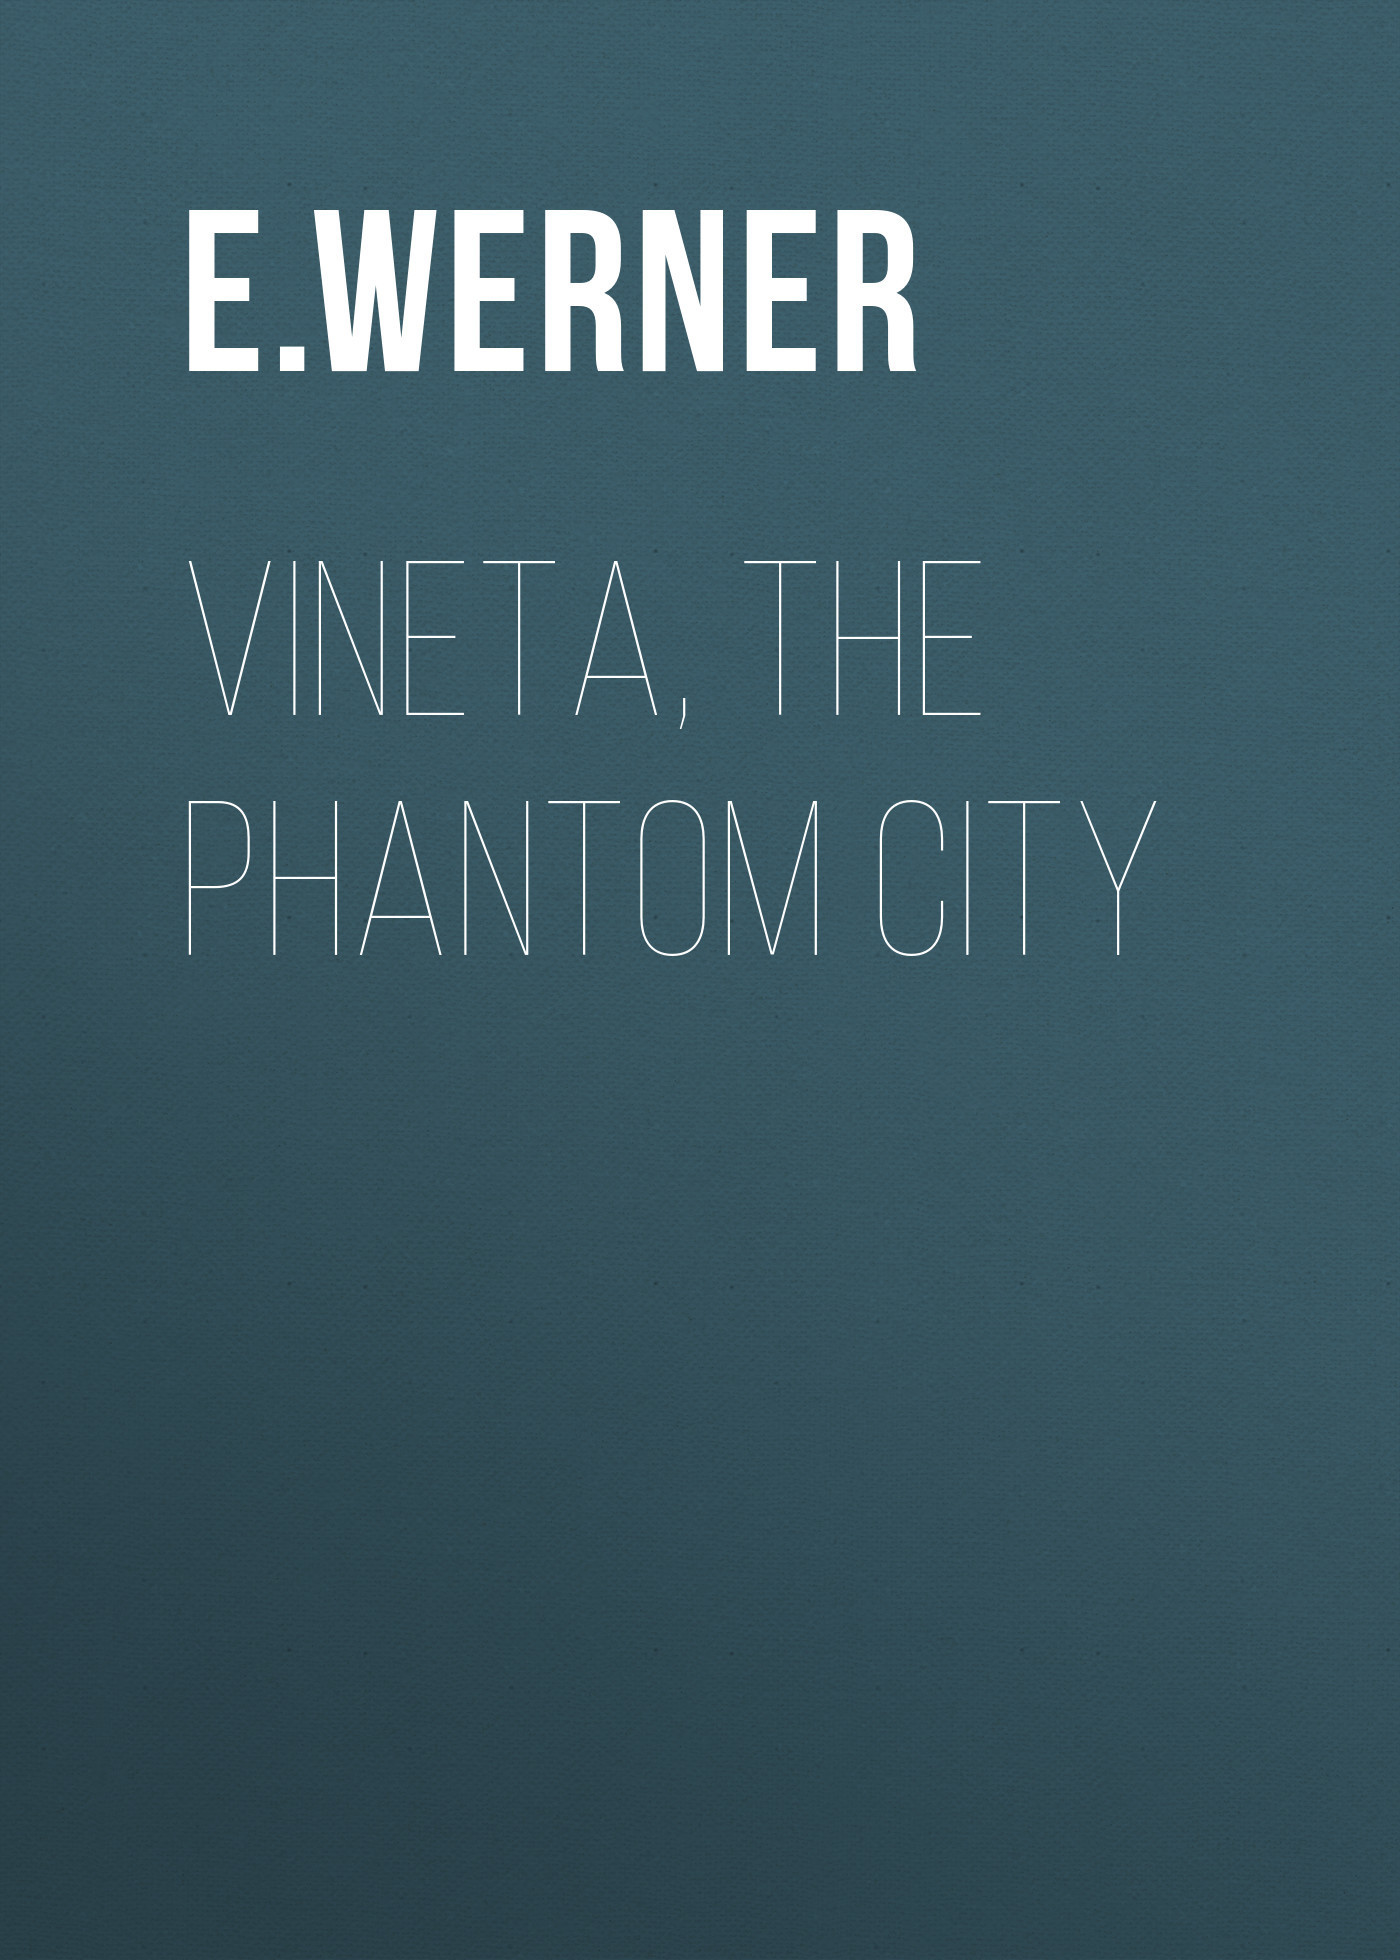 Vineta, the Phantom City